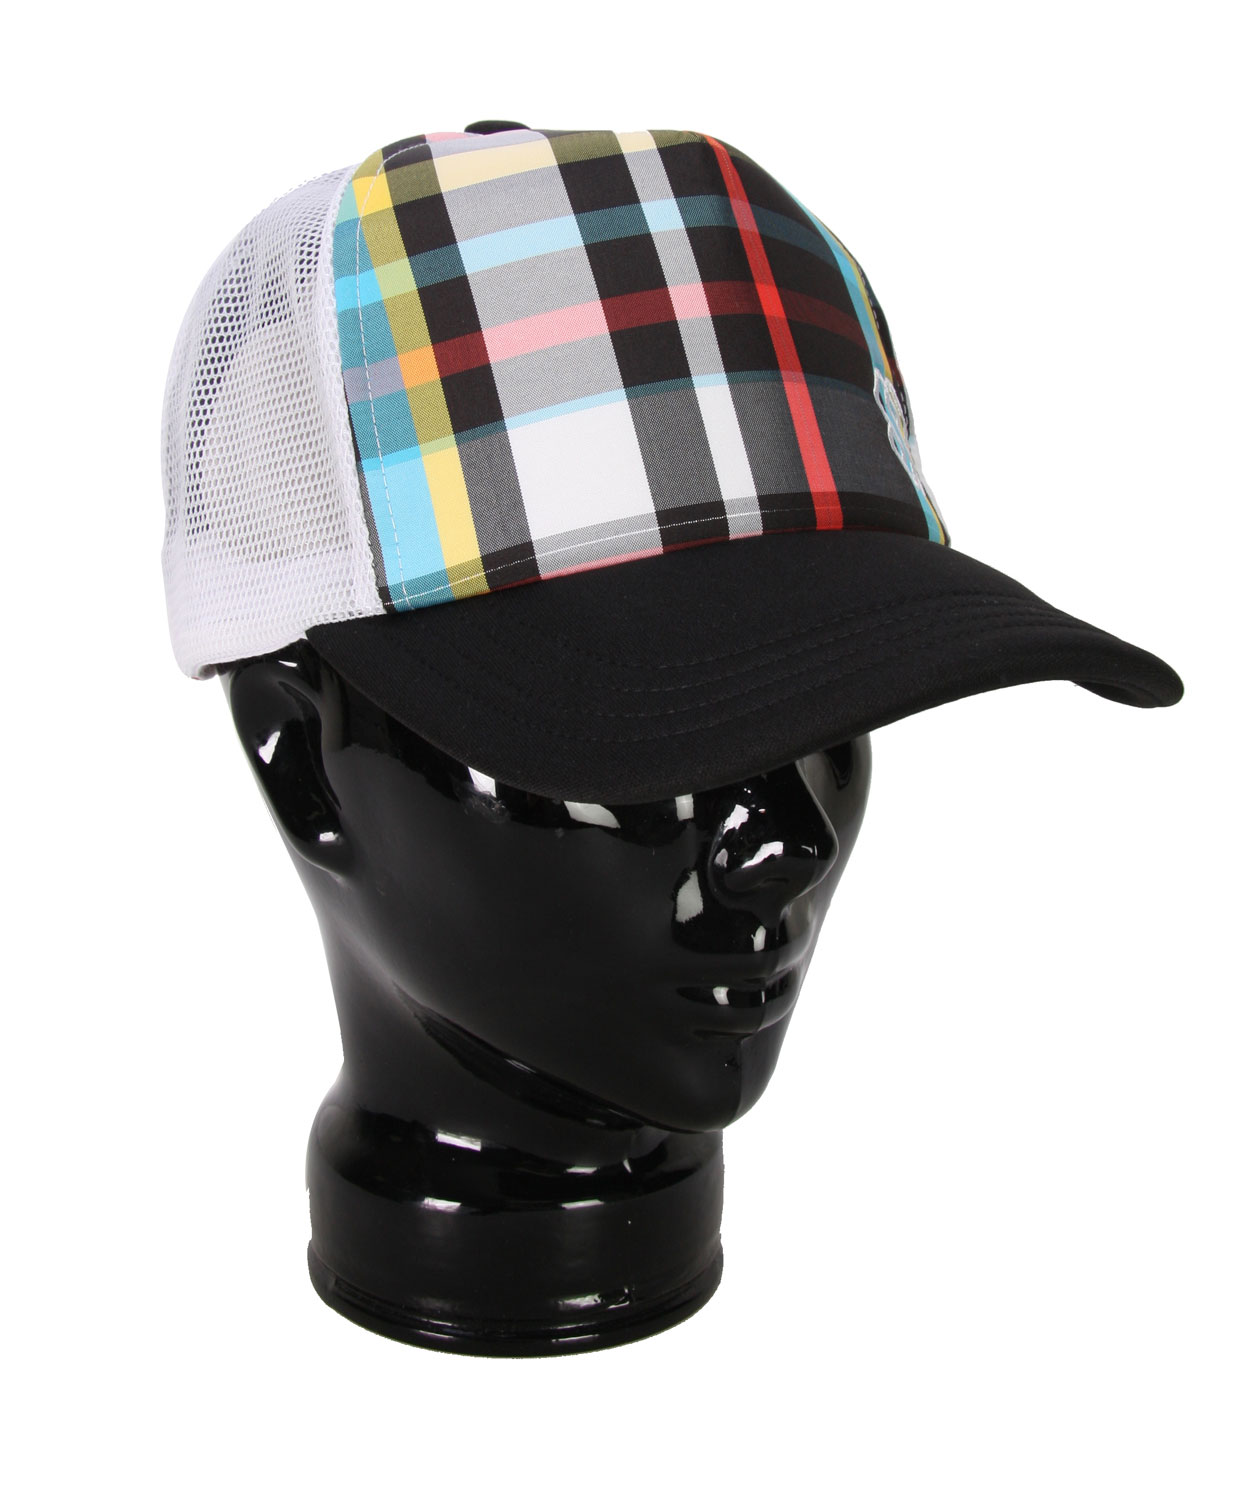 Want to add some extra glam to your outfit? Do so with the Special Blend Glam Plaid Trucker Hat, featuring a fabulous plaid print design. Stand out with this bold design, adding depth and character to any outfit. All you girls out there who aren't afraid to stand out and be seen, this is the one for you. Be fabulous and rock the Special Blend Glam Plaid Trucker Hat with confidence.Key Features of The Special Blend Glam Plaid Trucker Women's Hat: Glam plaid pattern on front panels Logo embroidery - $12.95